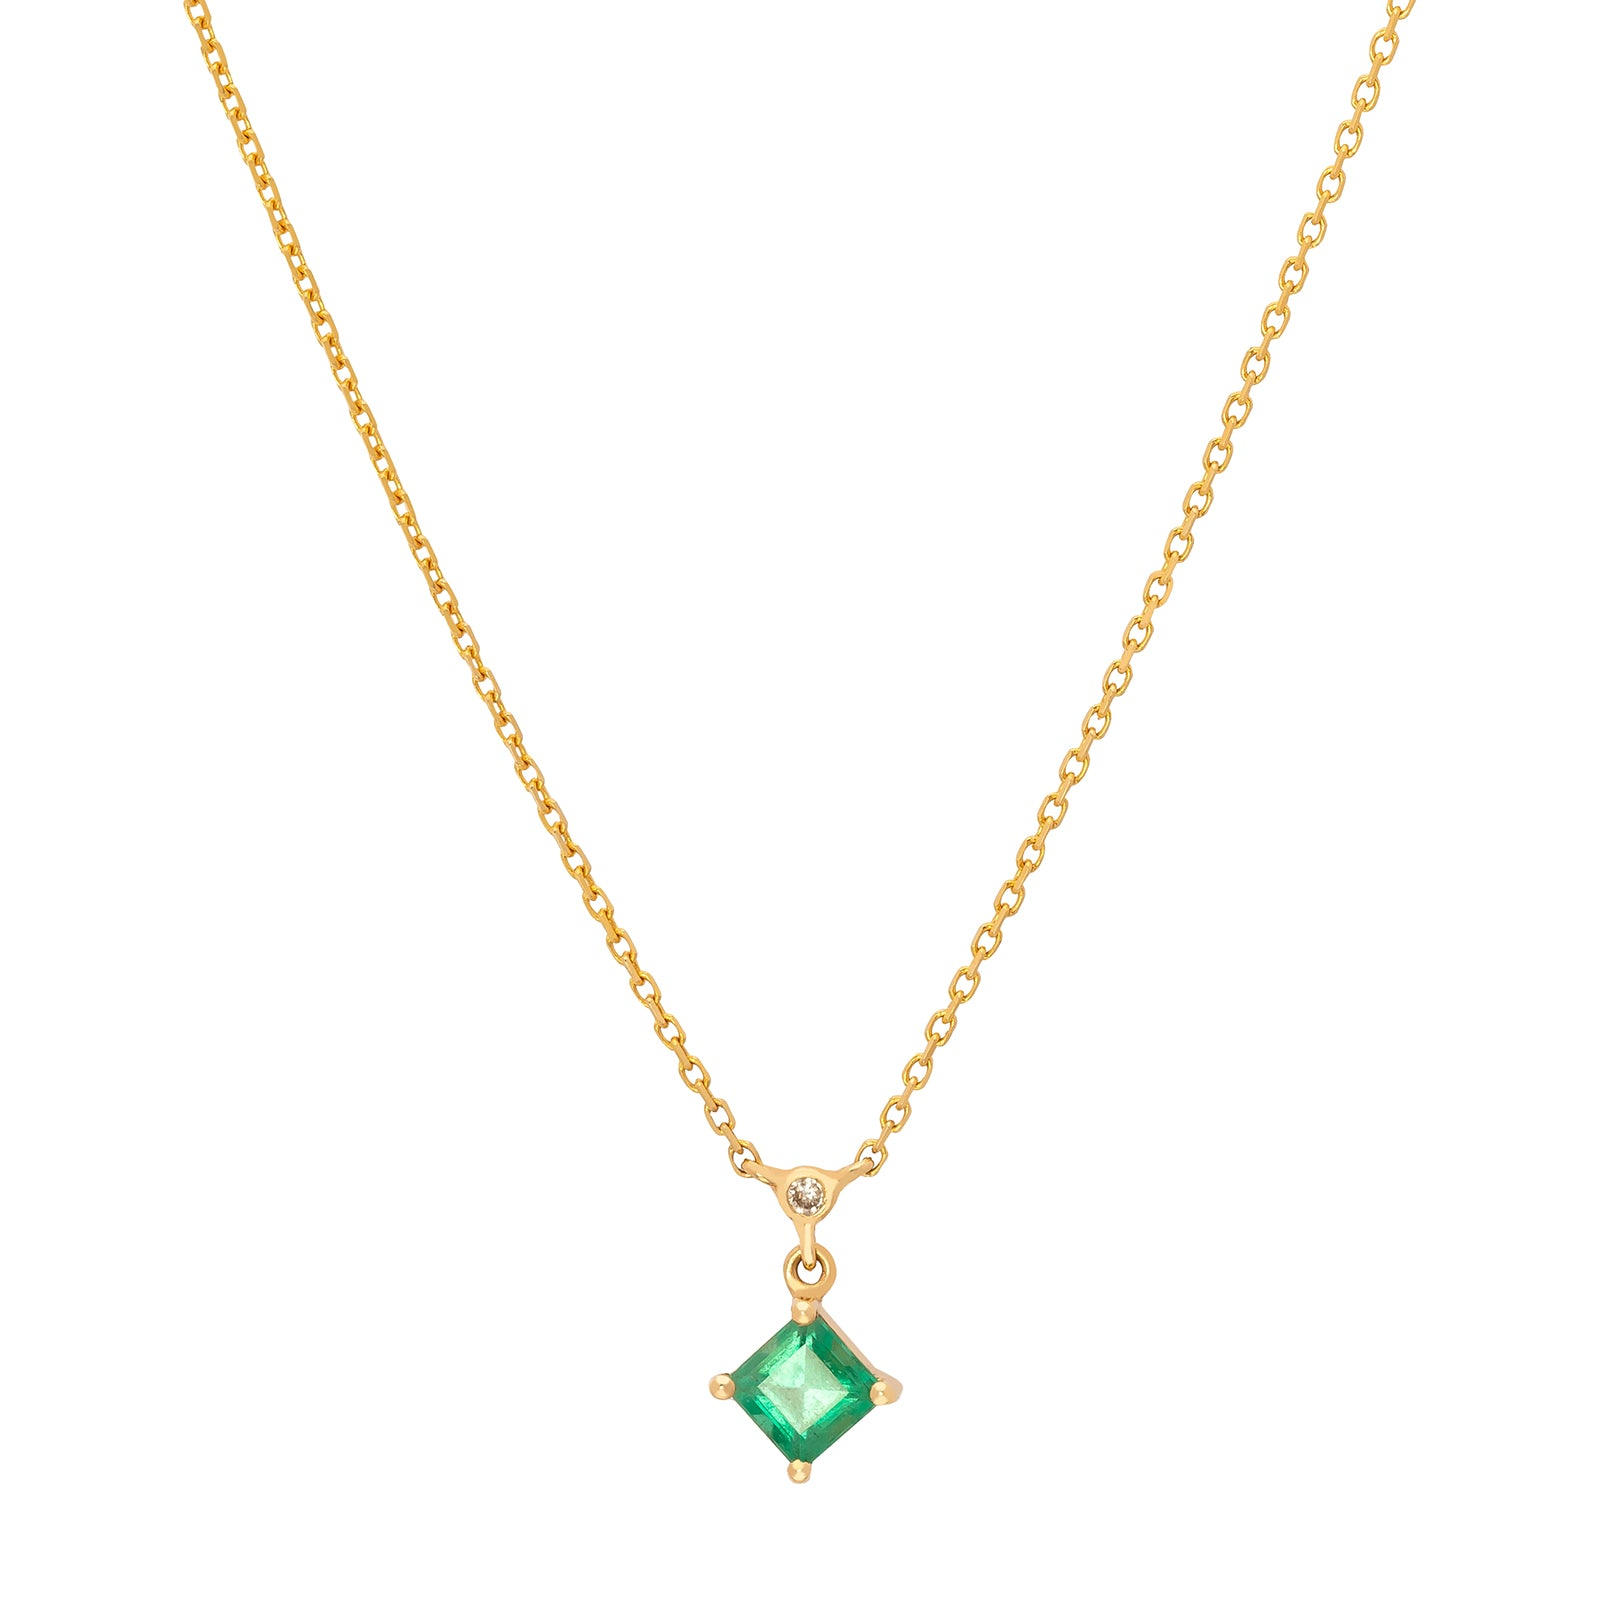 YI Collection Emerald & Diamond Whispers Necklace - Necklaces - Broken English Jewelry